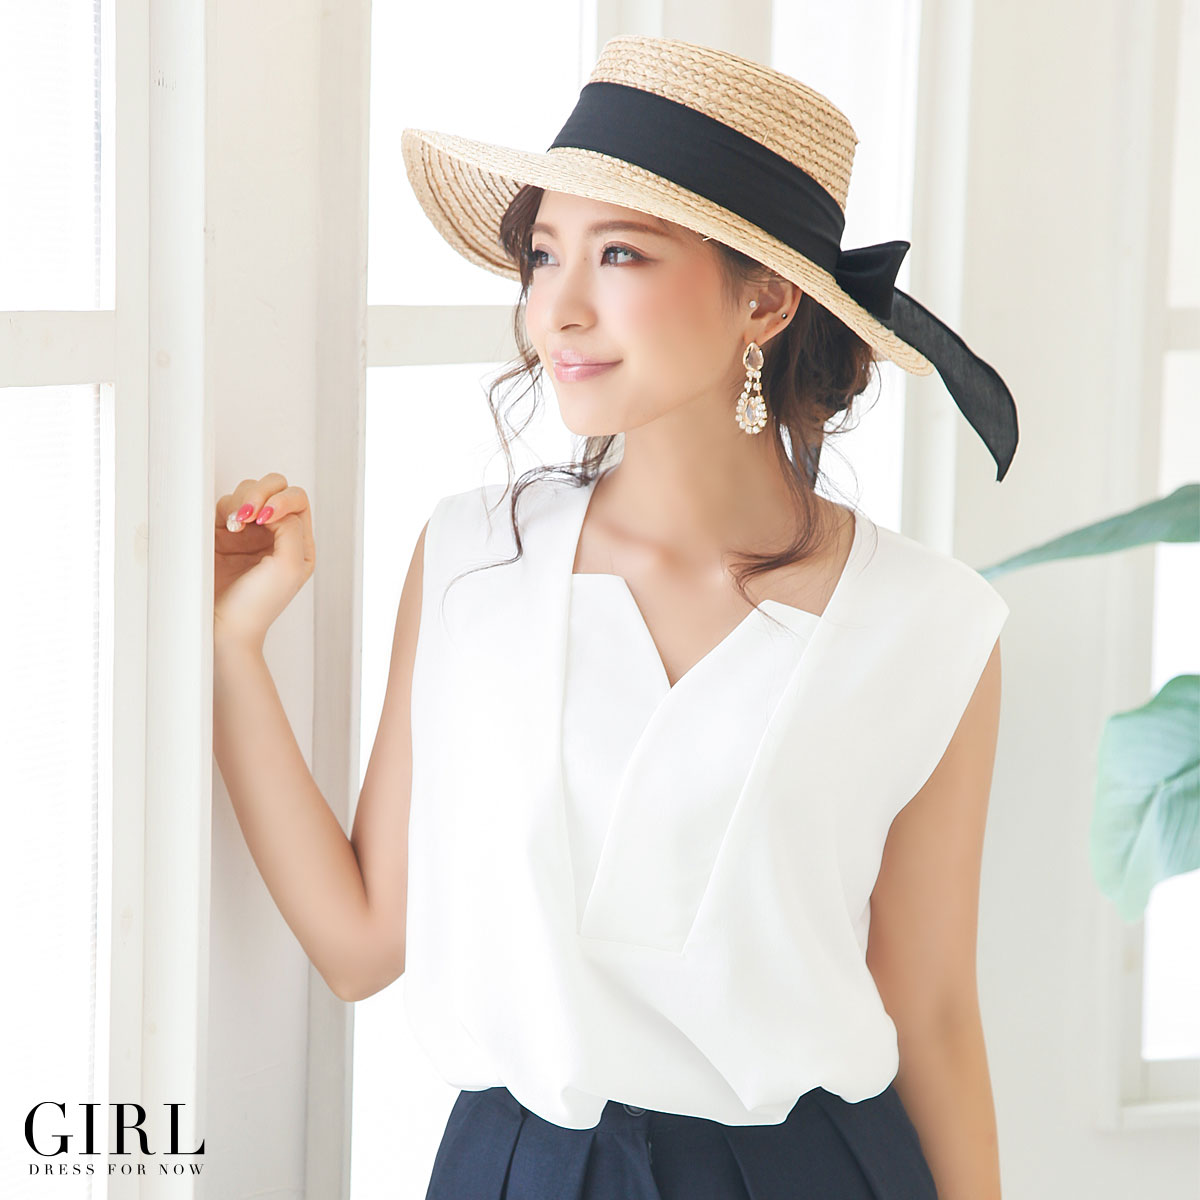 Straw Hat ·   Straw Hat ·   Hat ·   Women s ·  UV measures ·   UVA UVB  protection ·   The girly ·   Feminine ·   Natural ·   Casual ·   Resort bd0f498cb4f